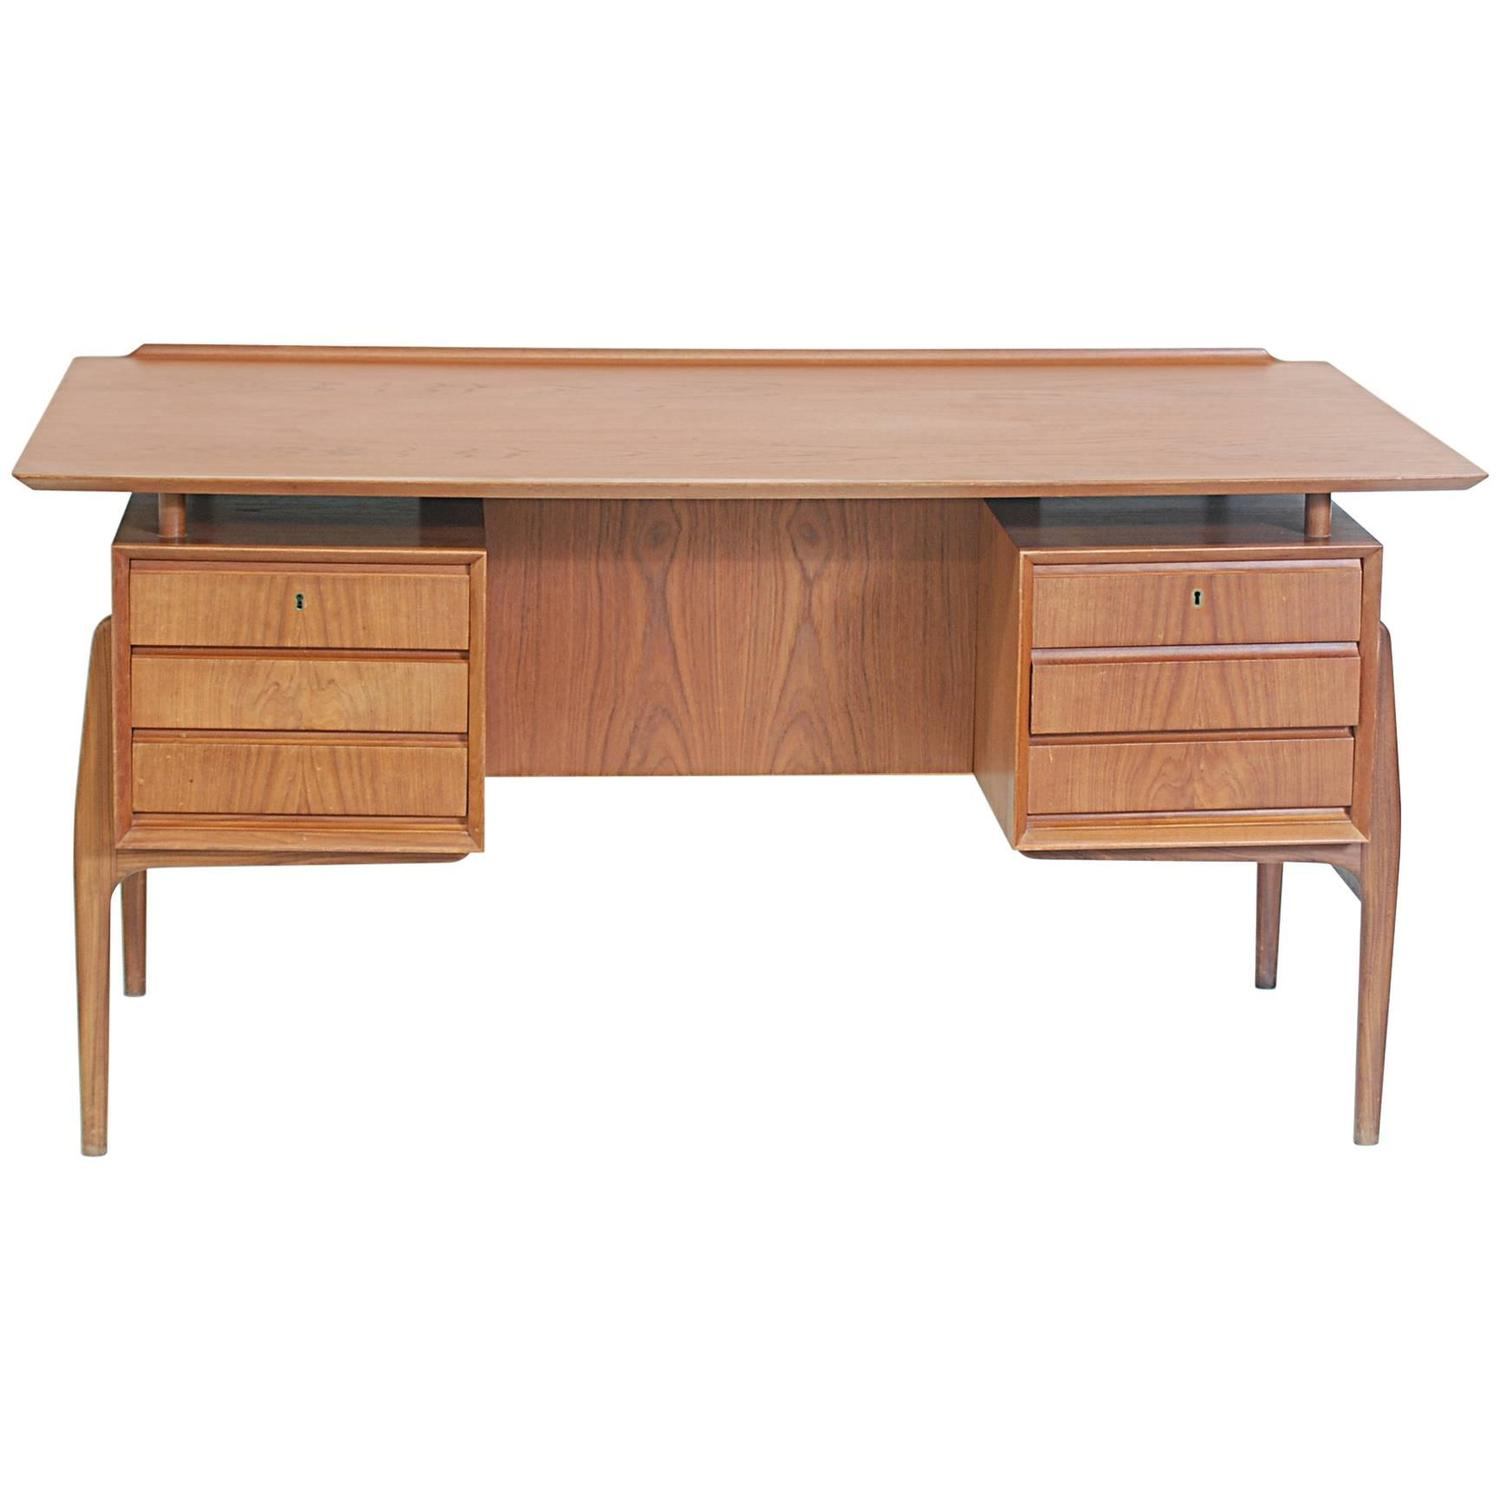 Danish modern teak floating top partners desk for sale at for Floating desk for sale